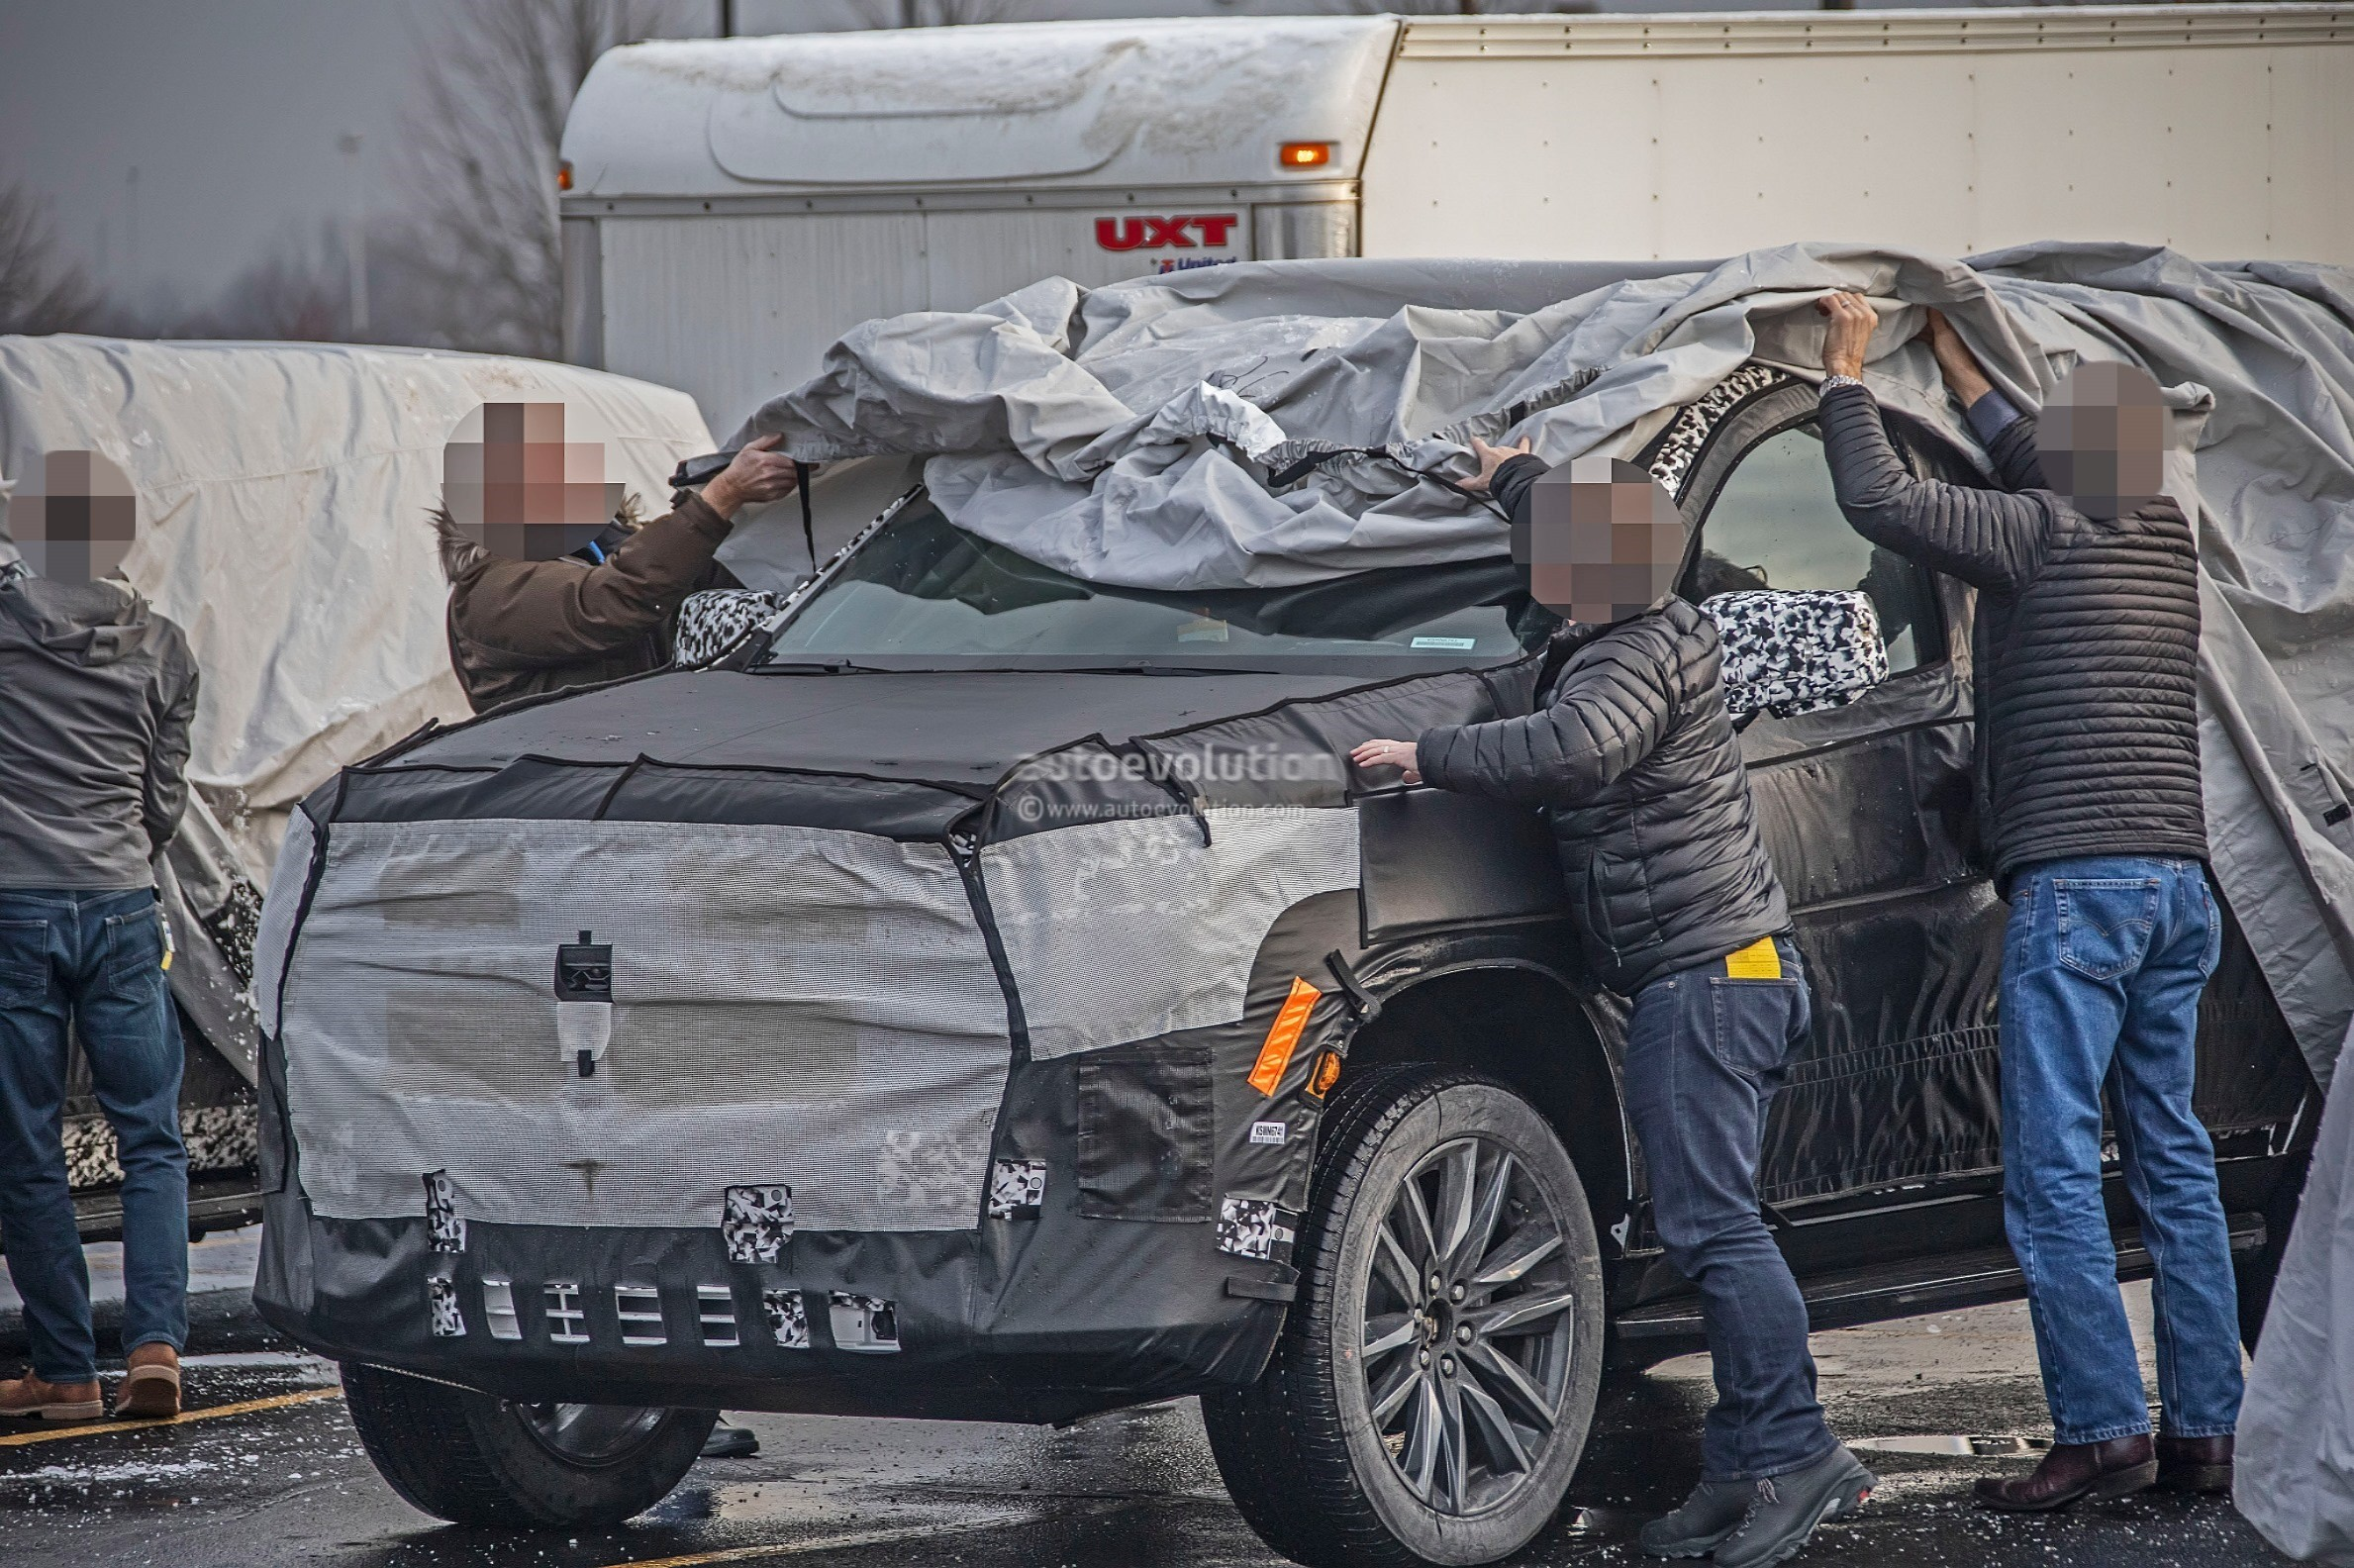 202 - [Cadillac] Escalade V 2020-cadillac-escalade-spied-with-makeshift-dodge-ram-crosshair-grille_16